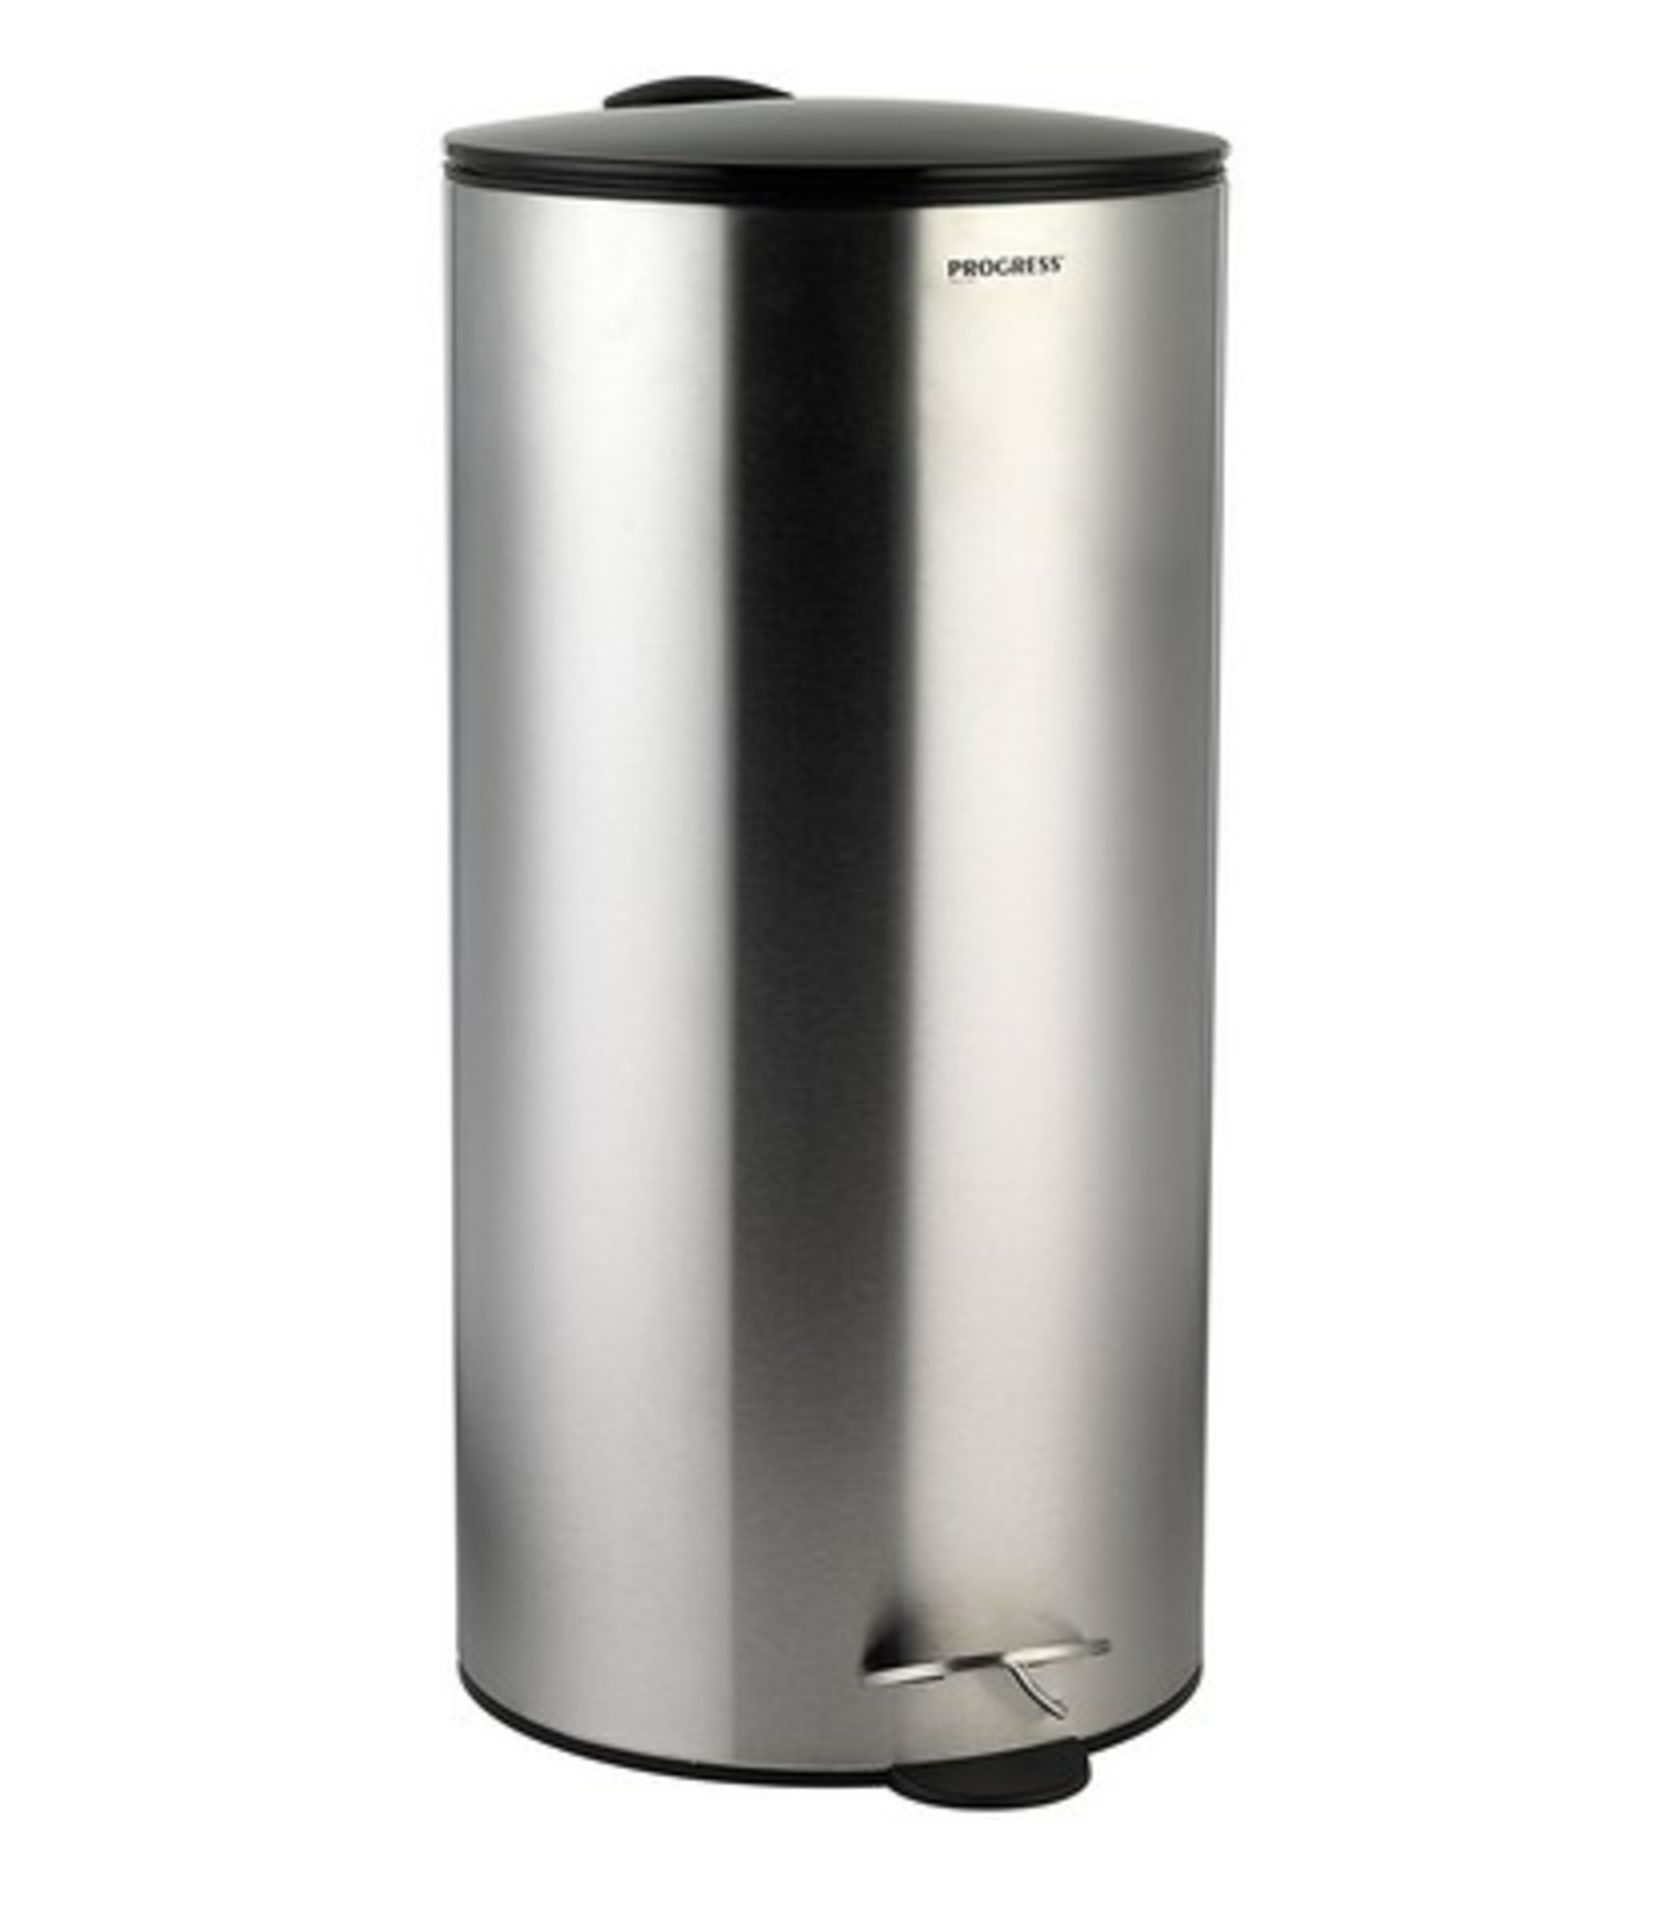 Lot 12174 - V Brand New Progress 30 Litre Petal Bin With Soft Closing Lid Amazon Price £49.99